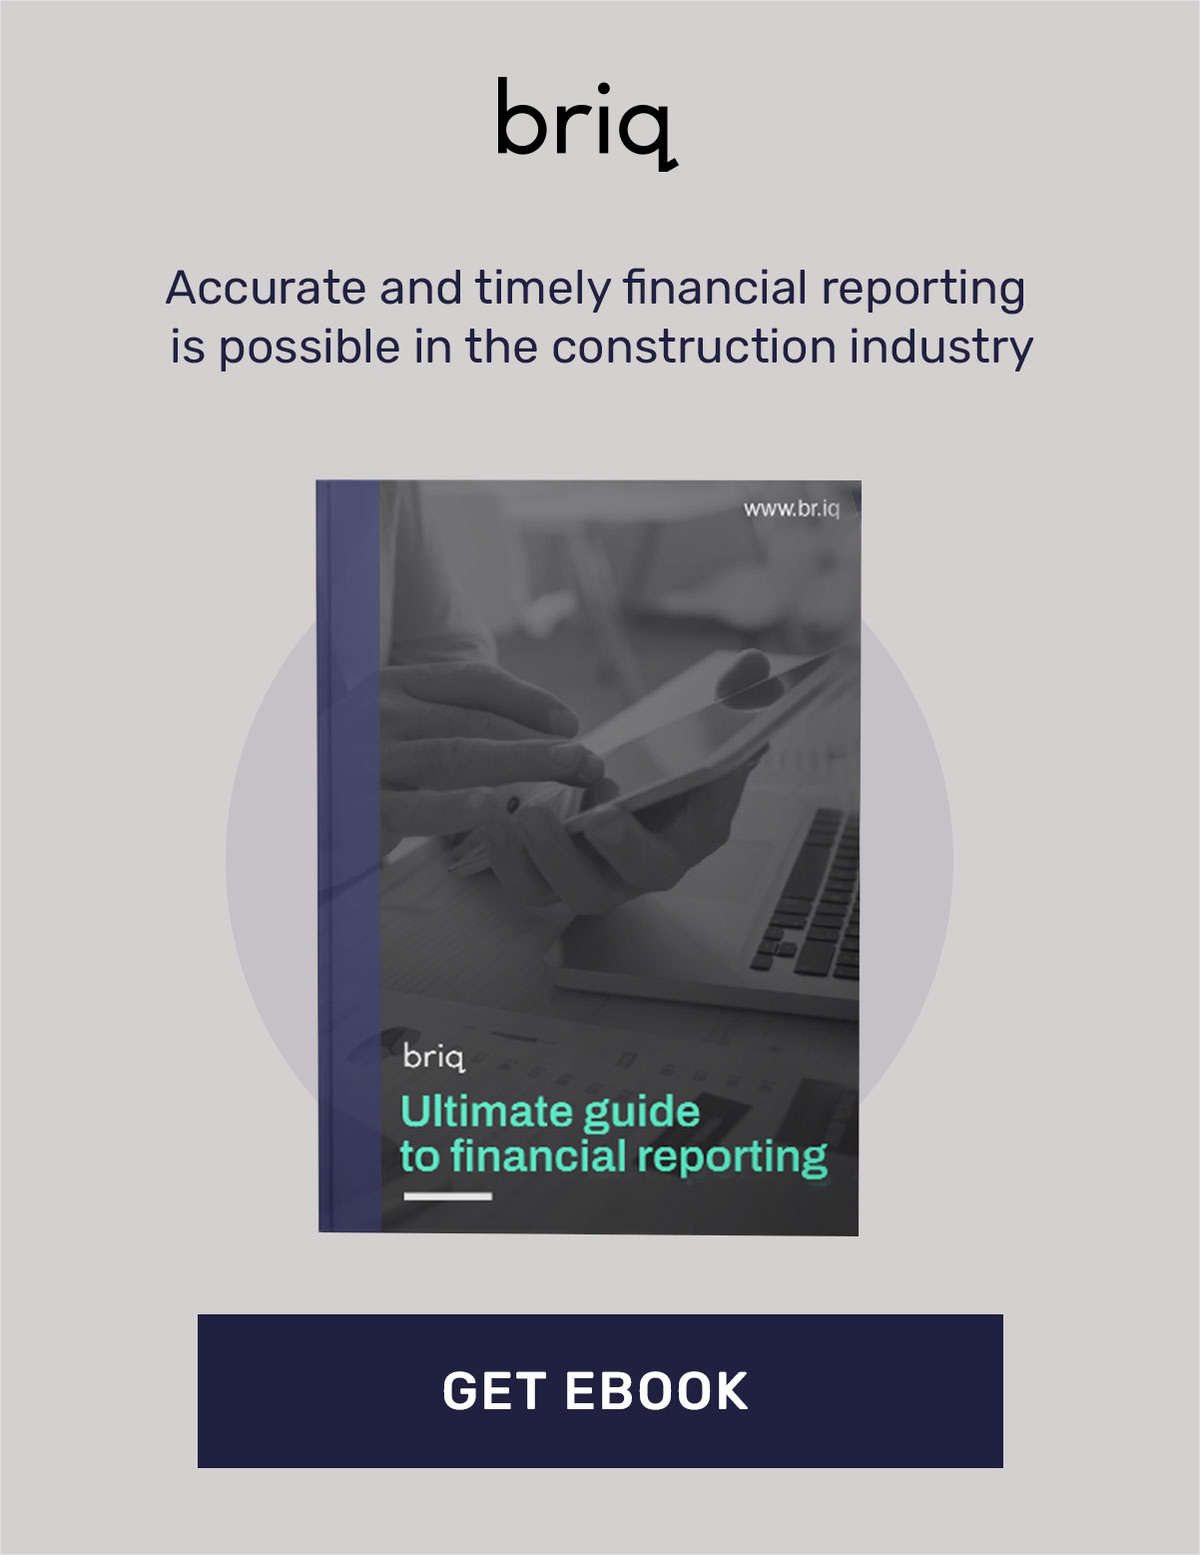 [eBook] - The Ultimate Guide to Financial Reporting